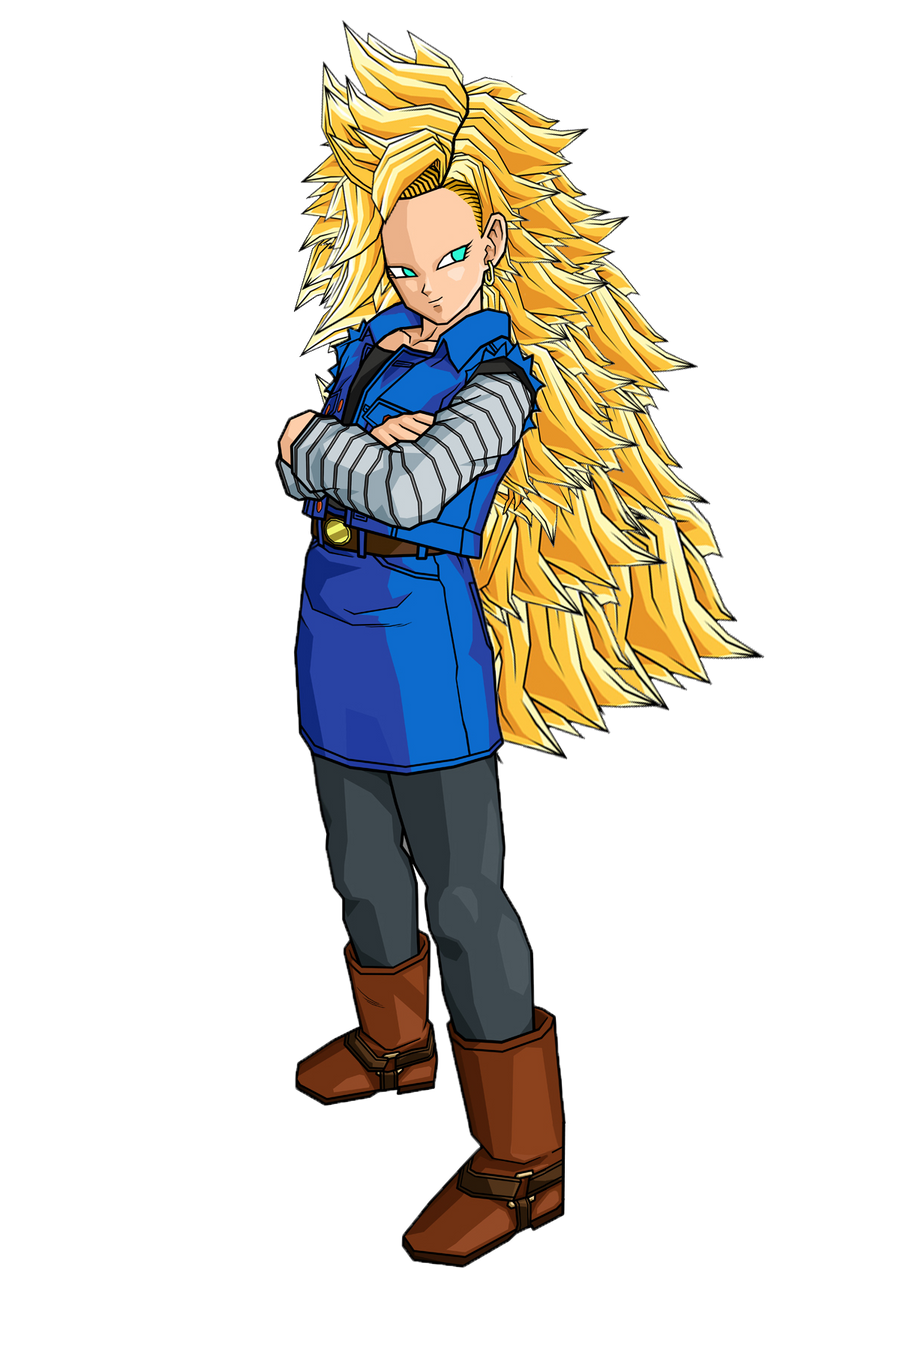 SSJ3 Android 18 by SpinoInWonderland on DeviantArt